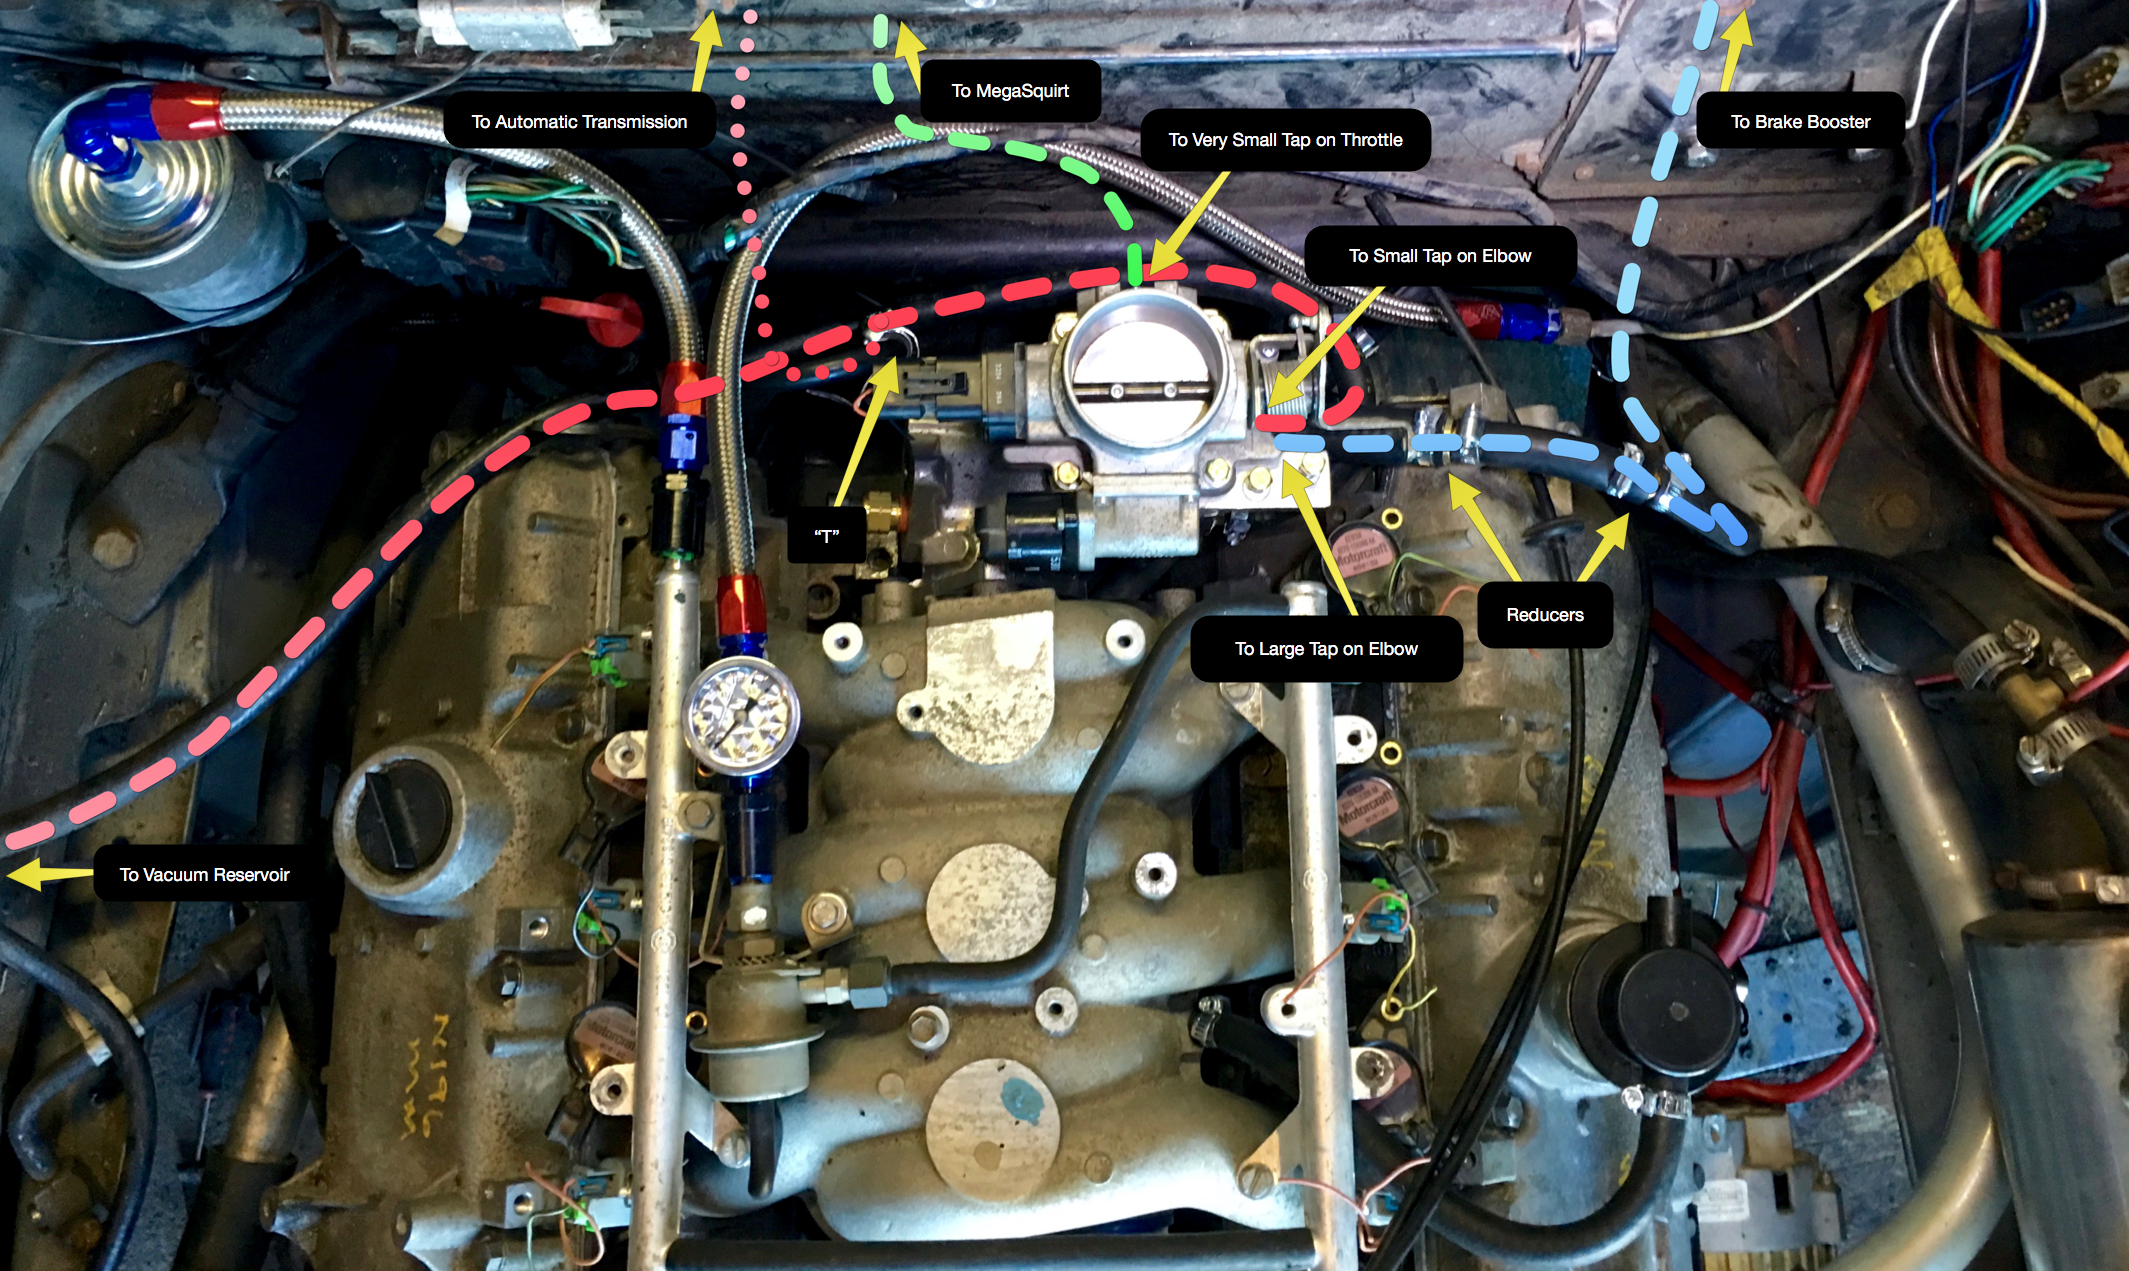 Final vacuum routing. The green line goes to MegaSquirt, the red to the vacuum reservoir and transmission, and the blue to the brake booster.